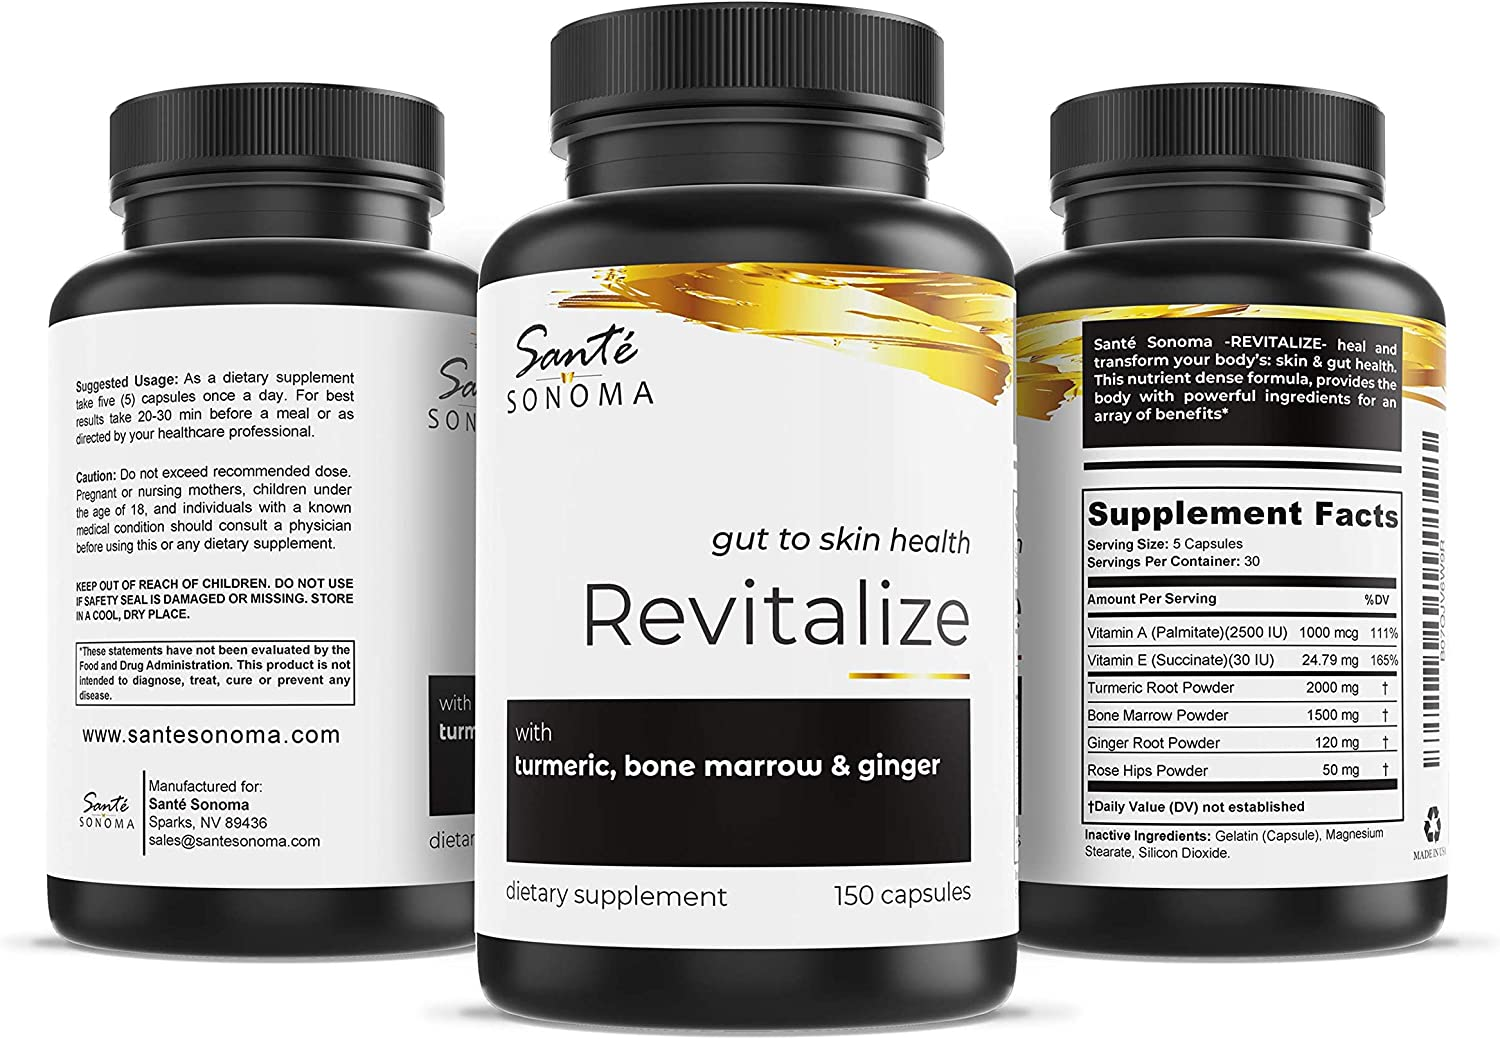 Sant Sonomas Superfood Revitalize Turmeric, Bone Marrow, Ginger, Rose Hips, Vitamin A and E 150 Capsules